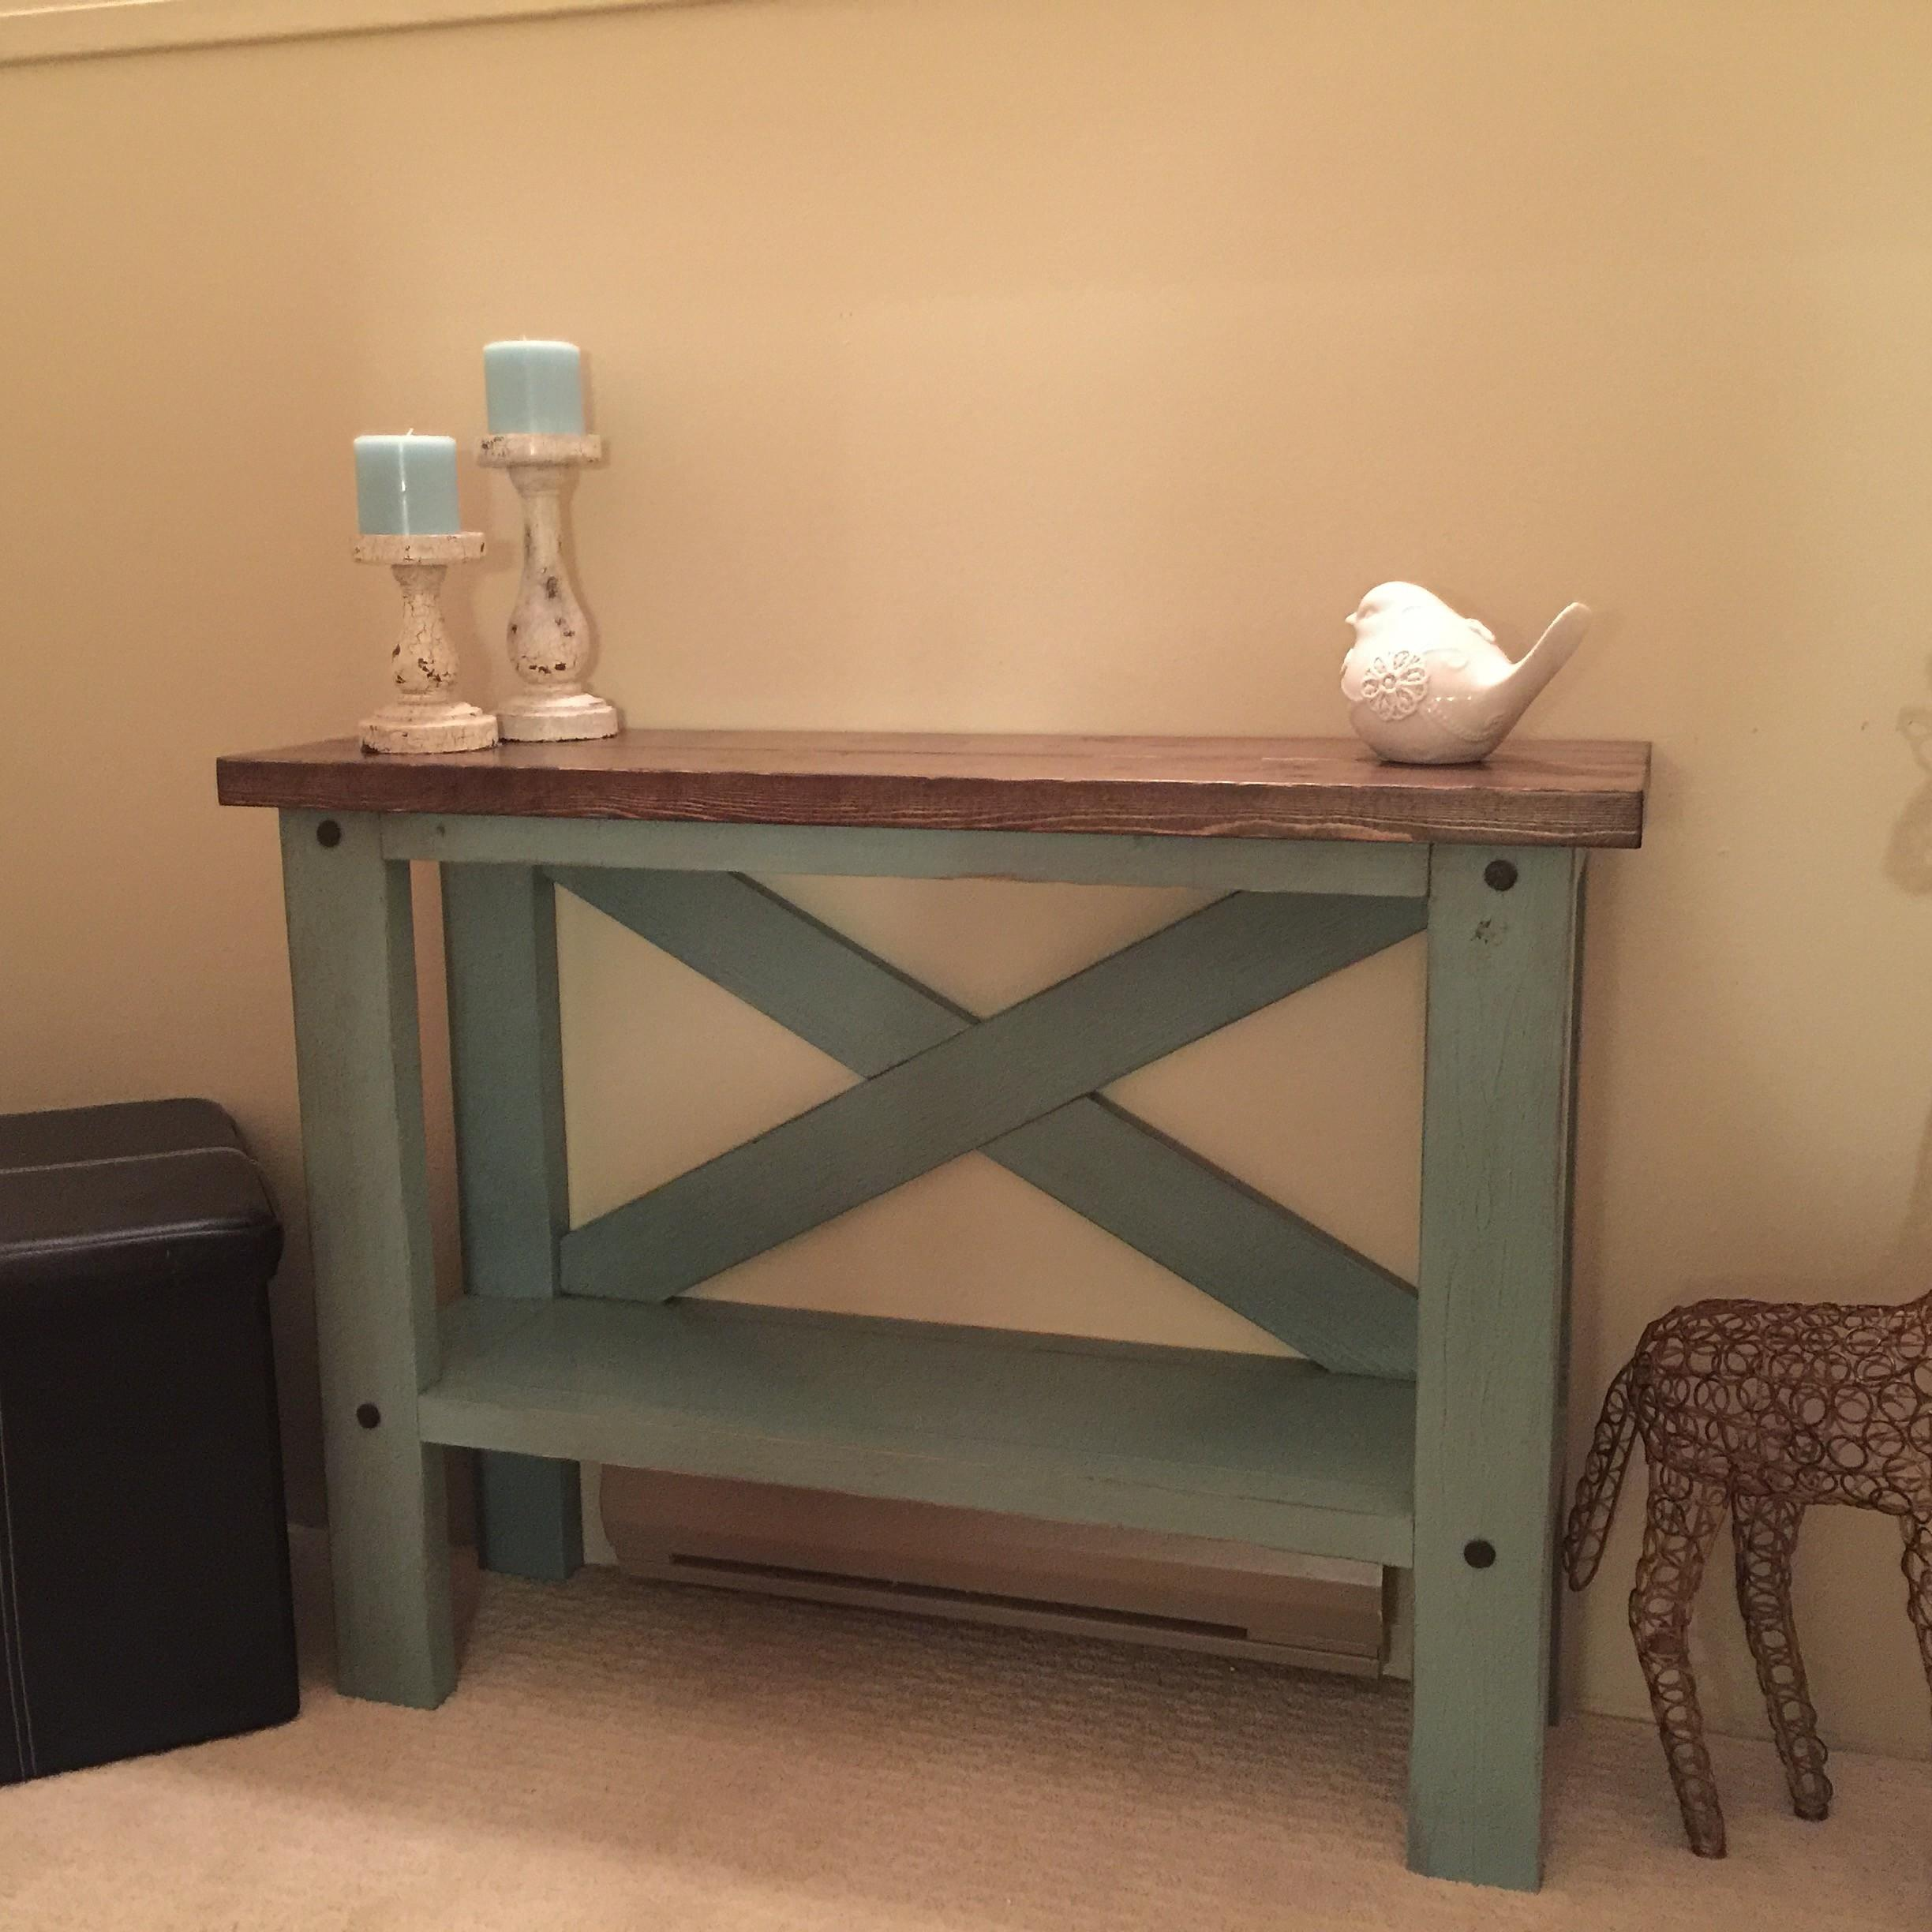 Ana White Mini Console Table Diy Projects